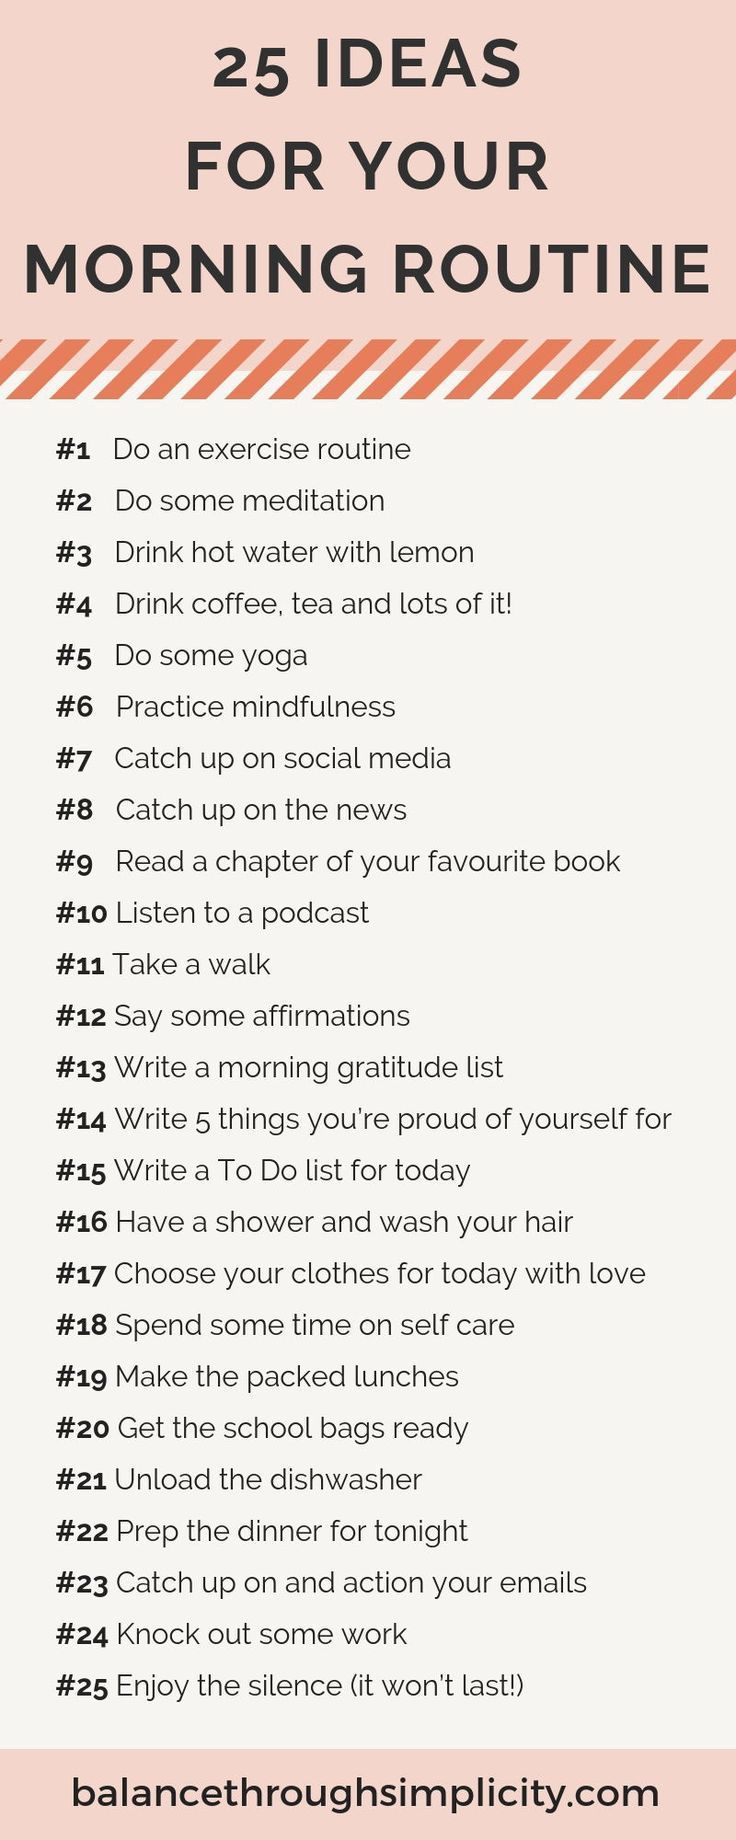 If you're looking for ideas on how to create a morning routine that really sets you up for the day then check out this post on 25 ideas for your morning routine. Use the time to plan and prepare your body and mind for the day ahead with a structured but flexible morning ro... #Balance #beauty routine checklist #beauty routine daily #beauty routine for oily skin #beauty routine ideas #beauty routine schedule #beauty routine skincare #beauty routine weekly #Ideas #Morning #Routine #Simplicity